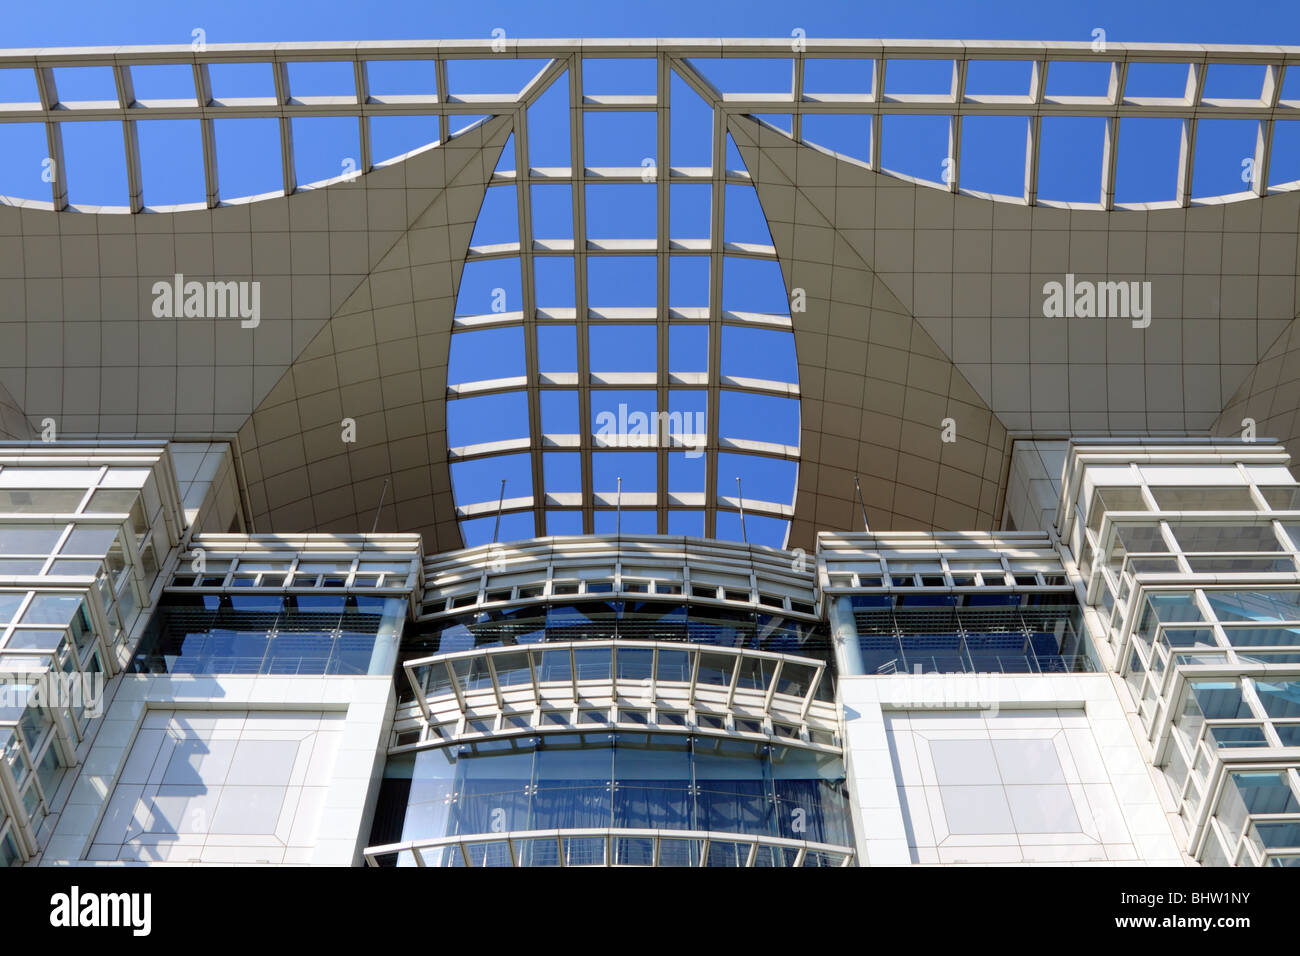 Shanghai Urban Planning Exhibition Hall upper facade - Stock Image